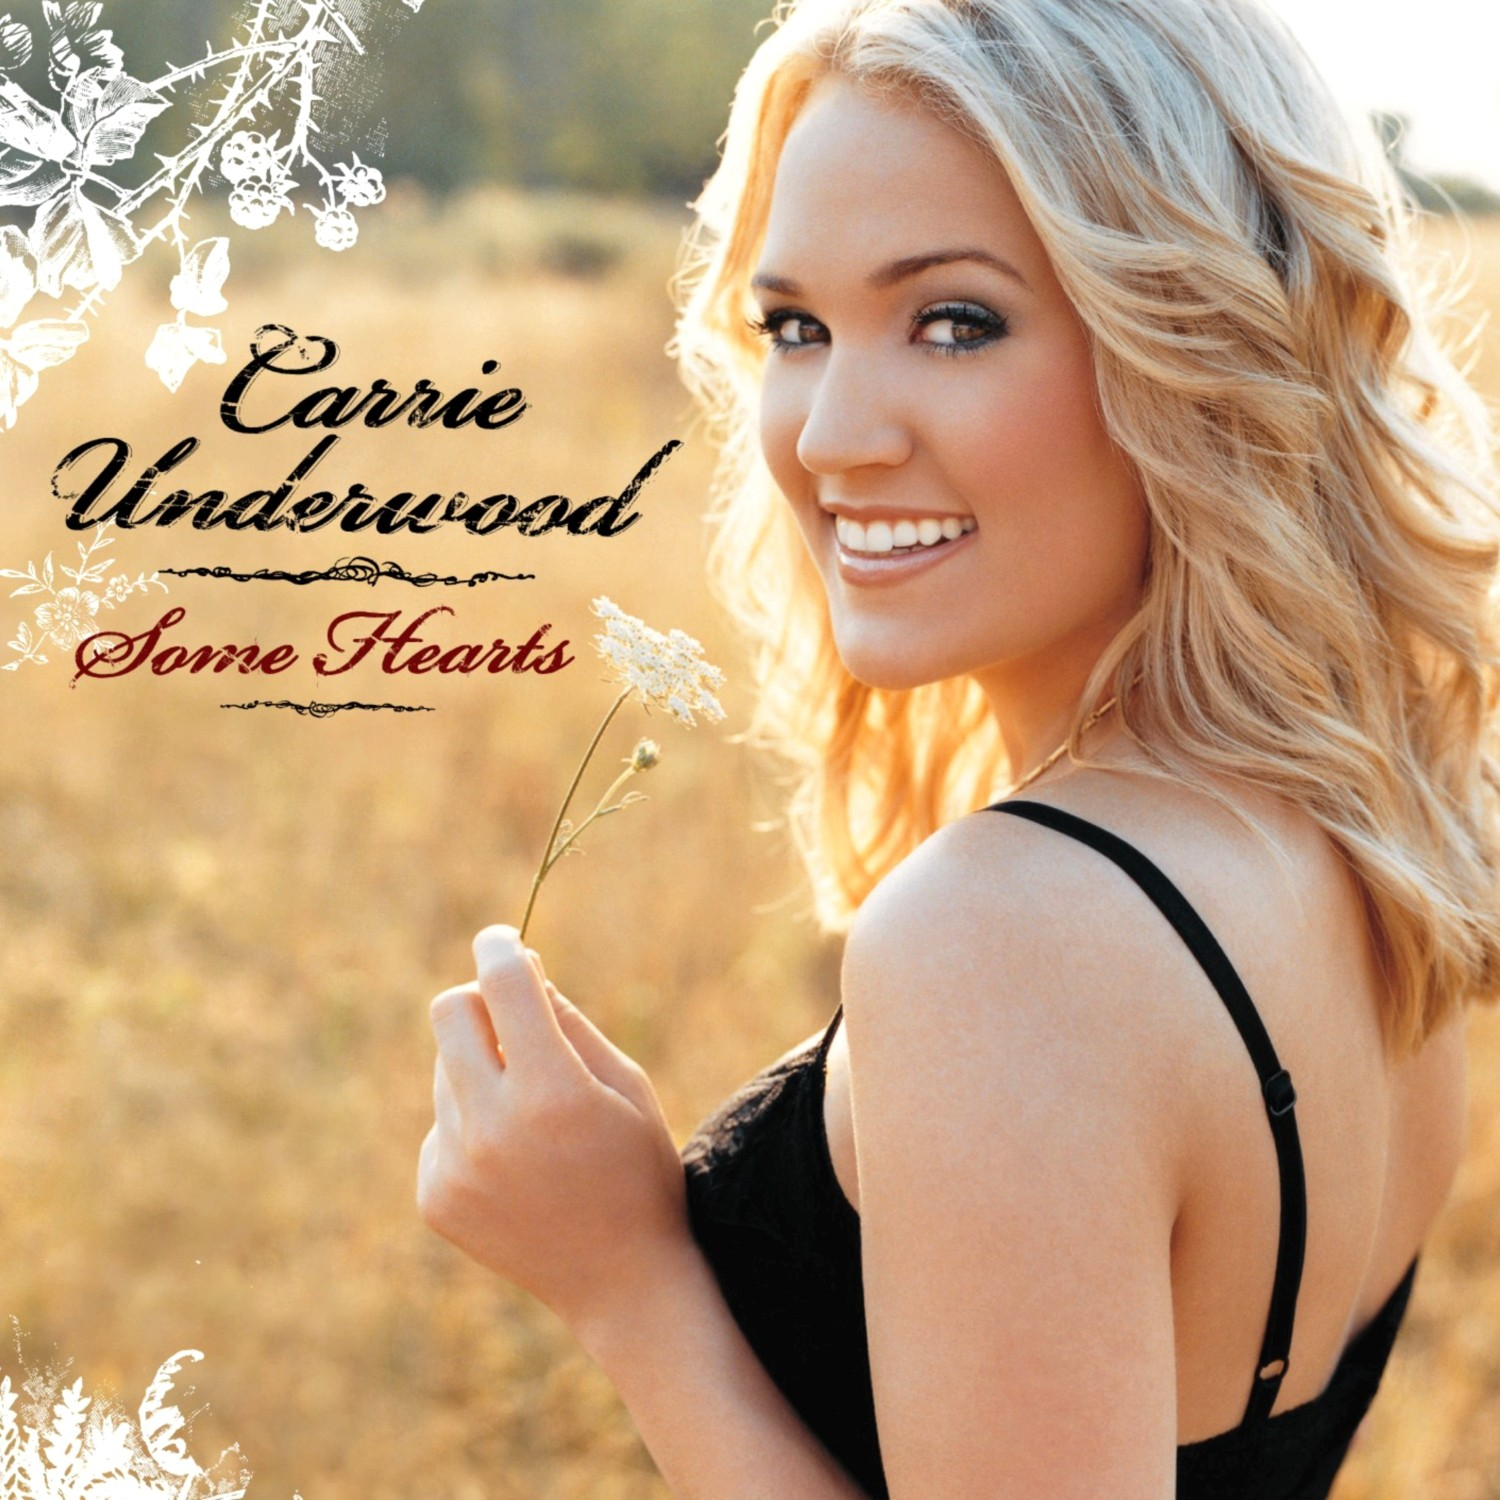 """Inside Your Heaven"" by Carrie Underwood"